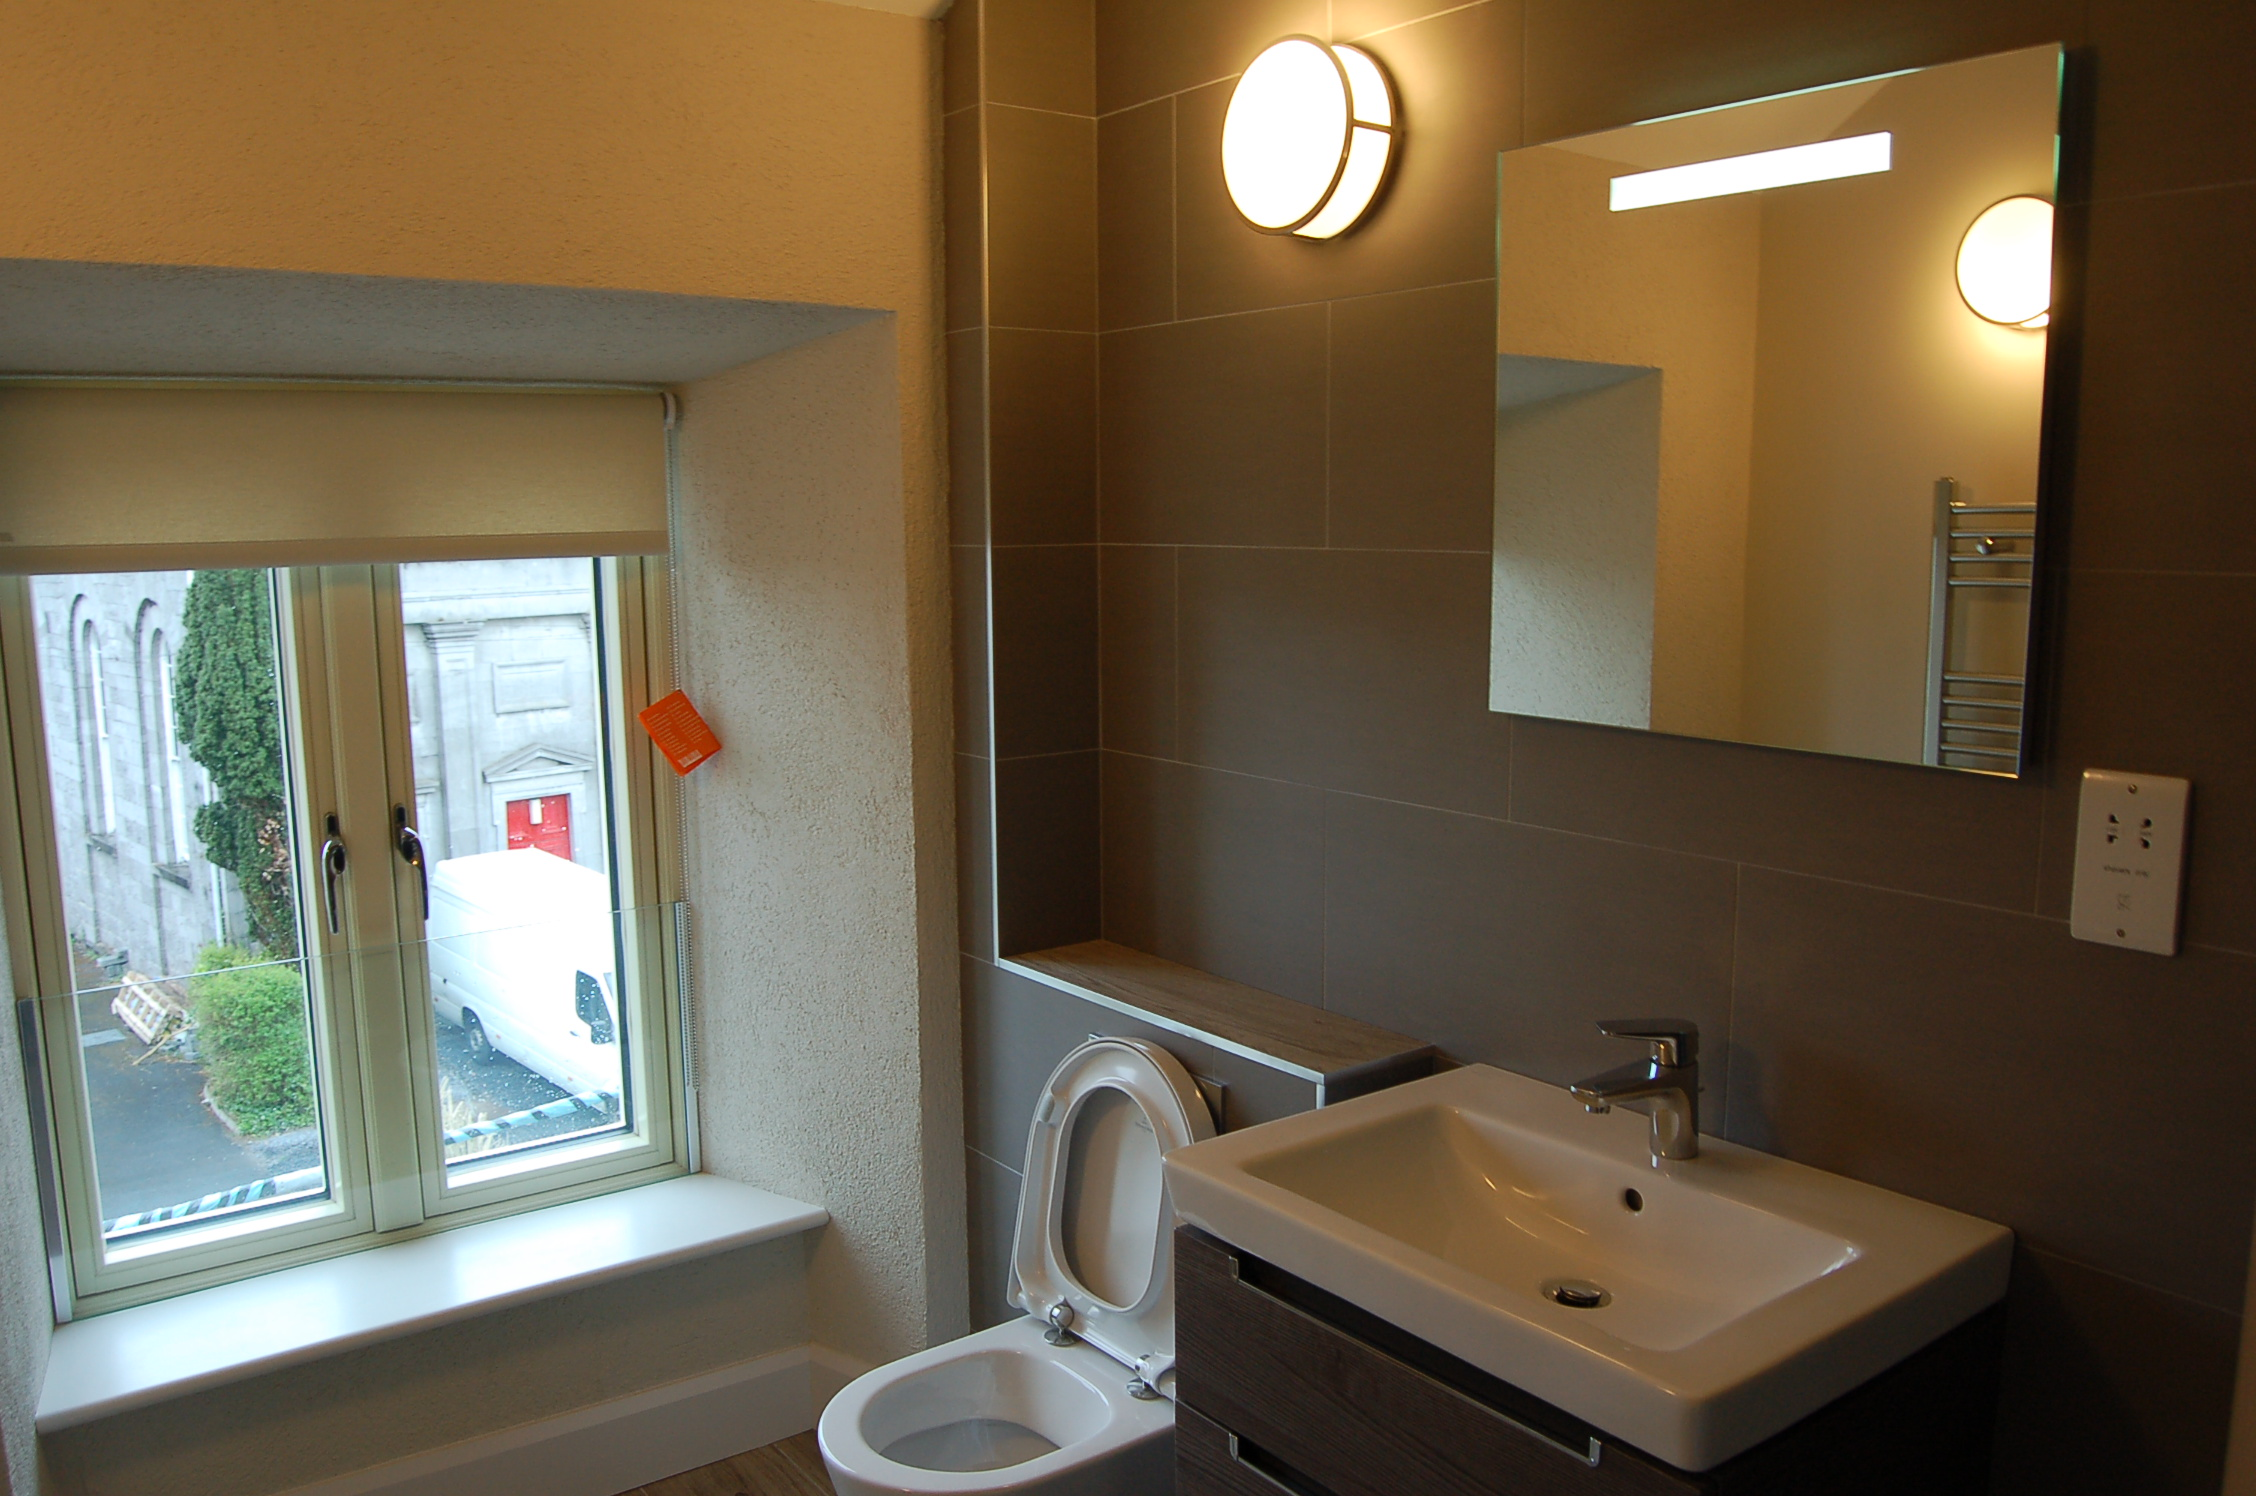 Bathroom Sinks Galway premier properties ireland